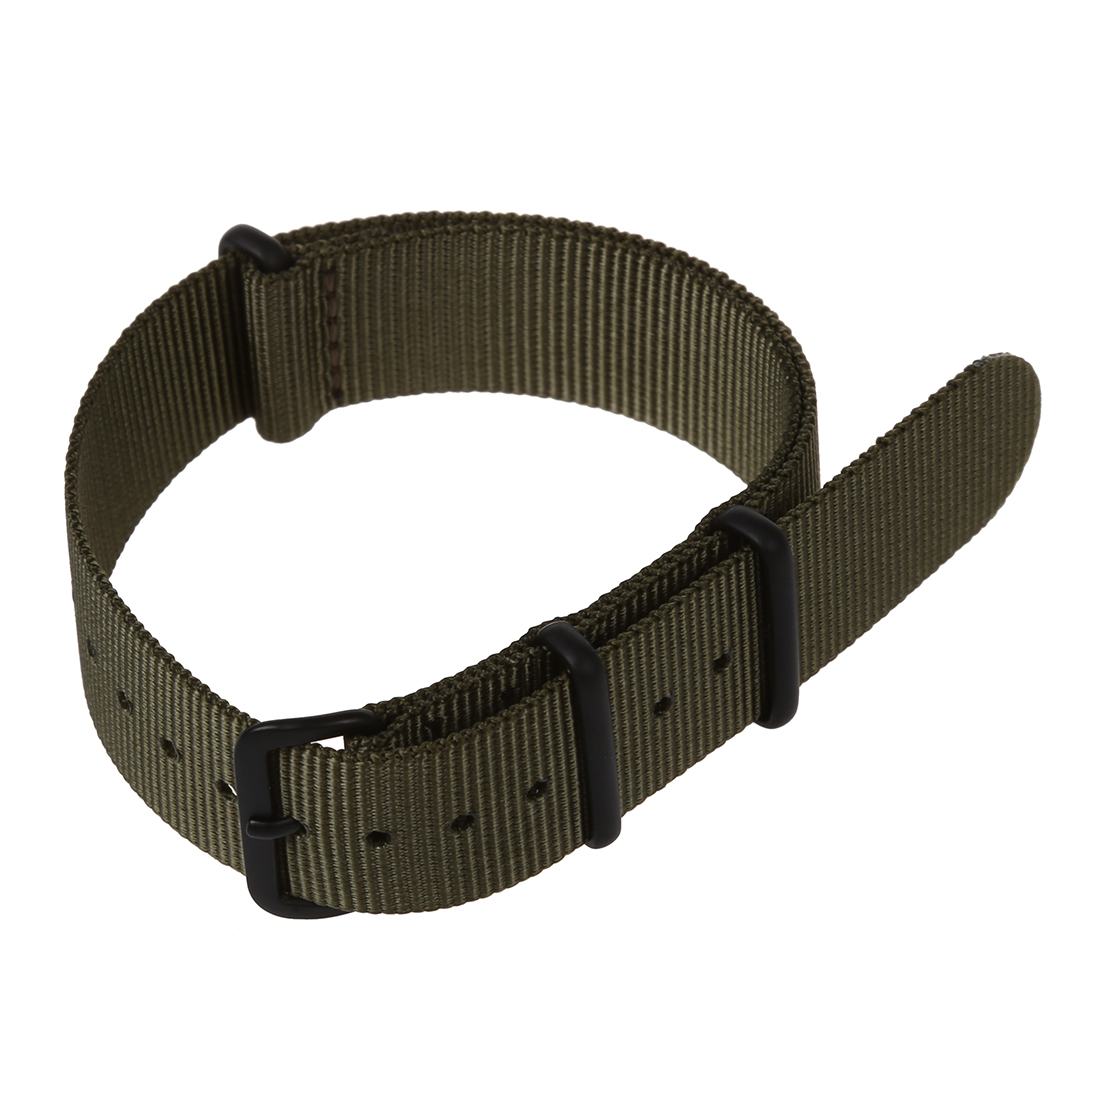 все цены на 20mm Army Green Nylon Fabric Outdoor Sport Watch Band Strap Fits TIMEX WEEKENDER WB2034 онлайн